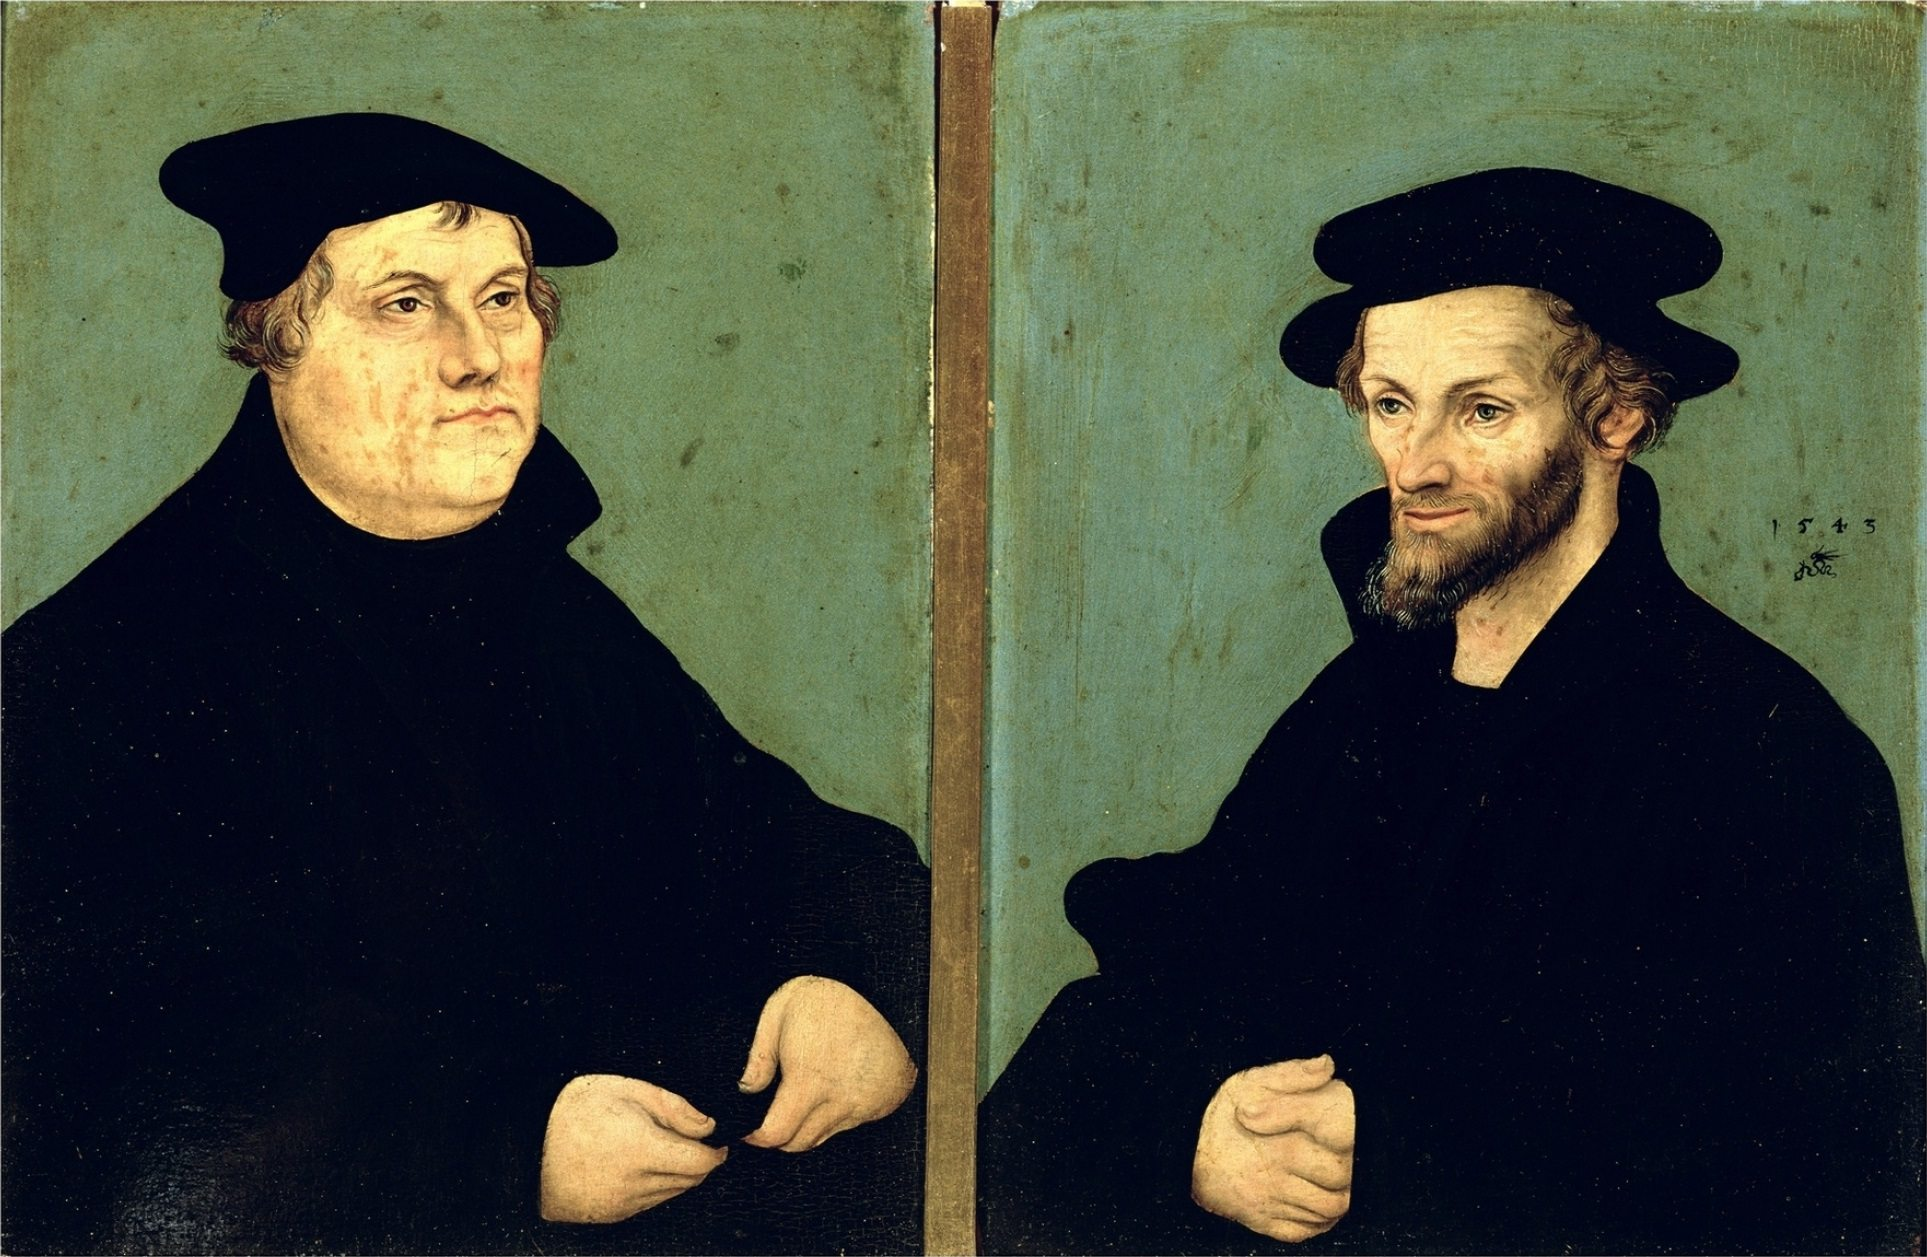 Martin Luther and Philipp Melanchton by Lucas Cranach d.Ä.